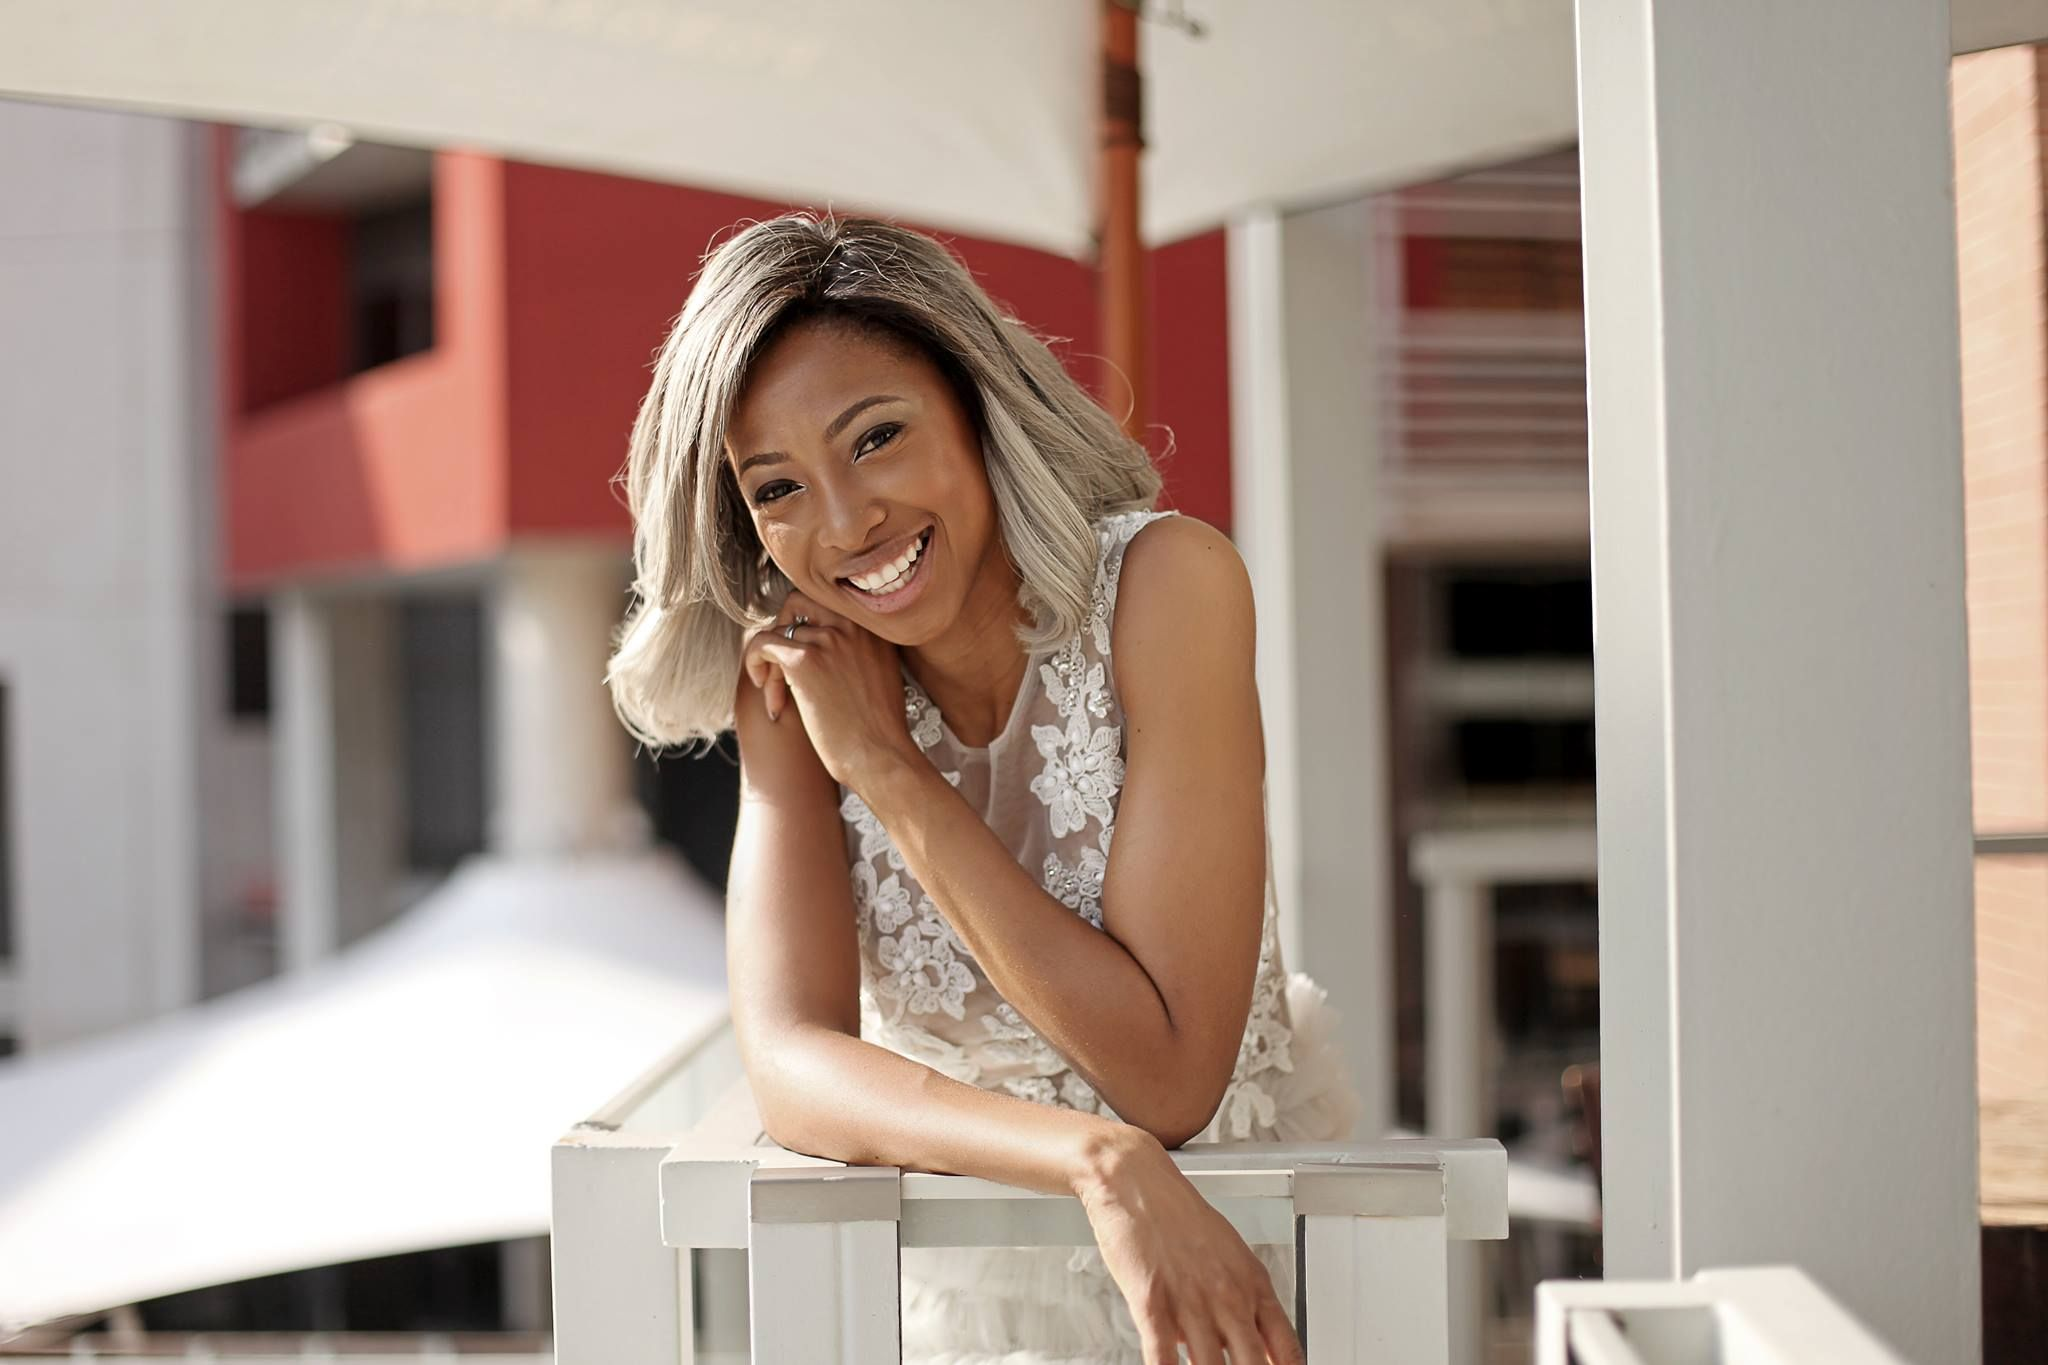 Enhle Mbali shares the love of her life